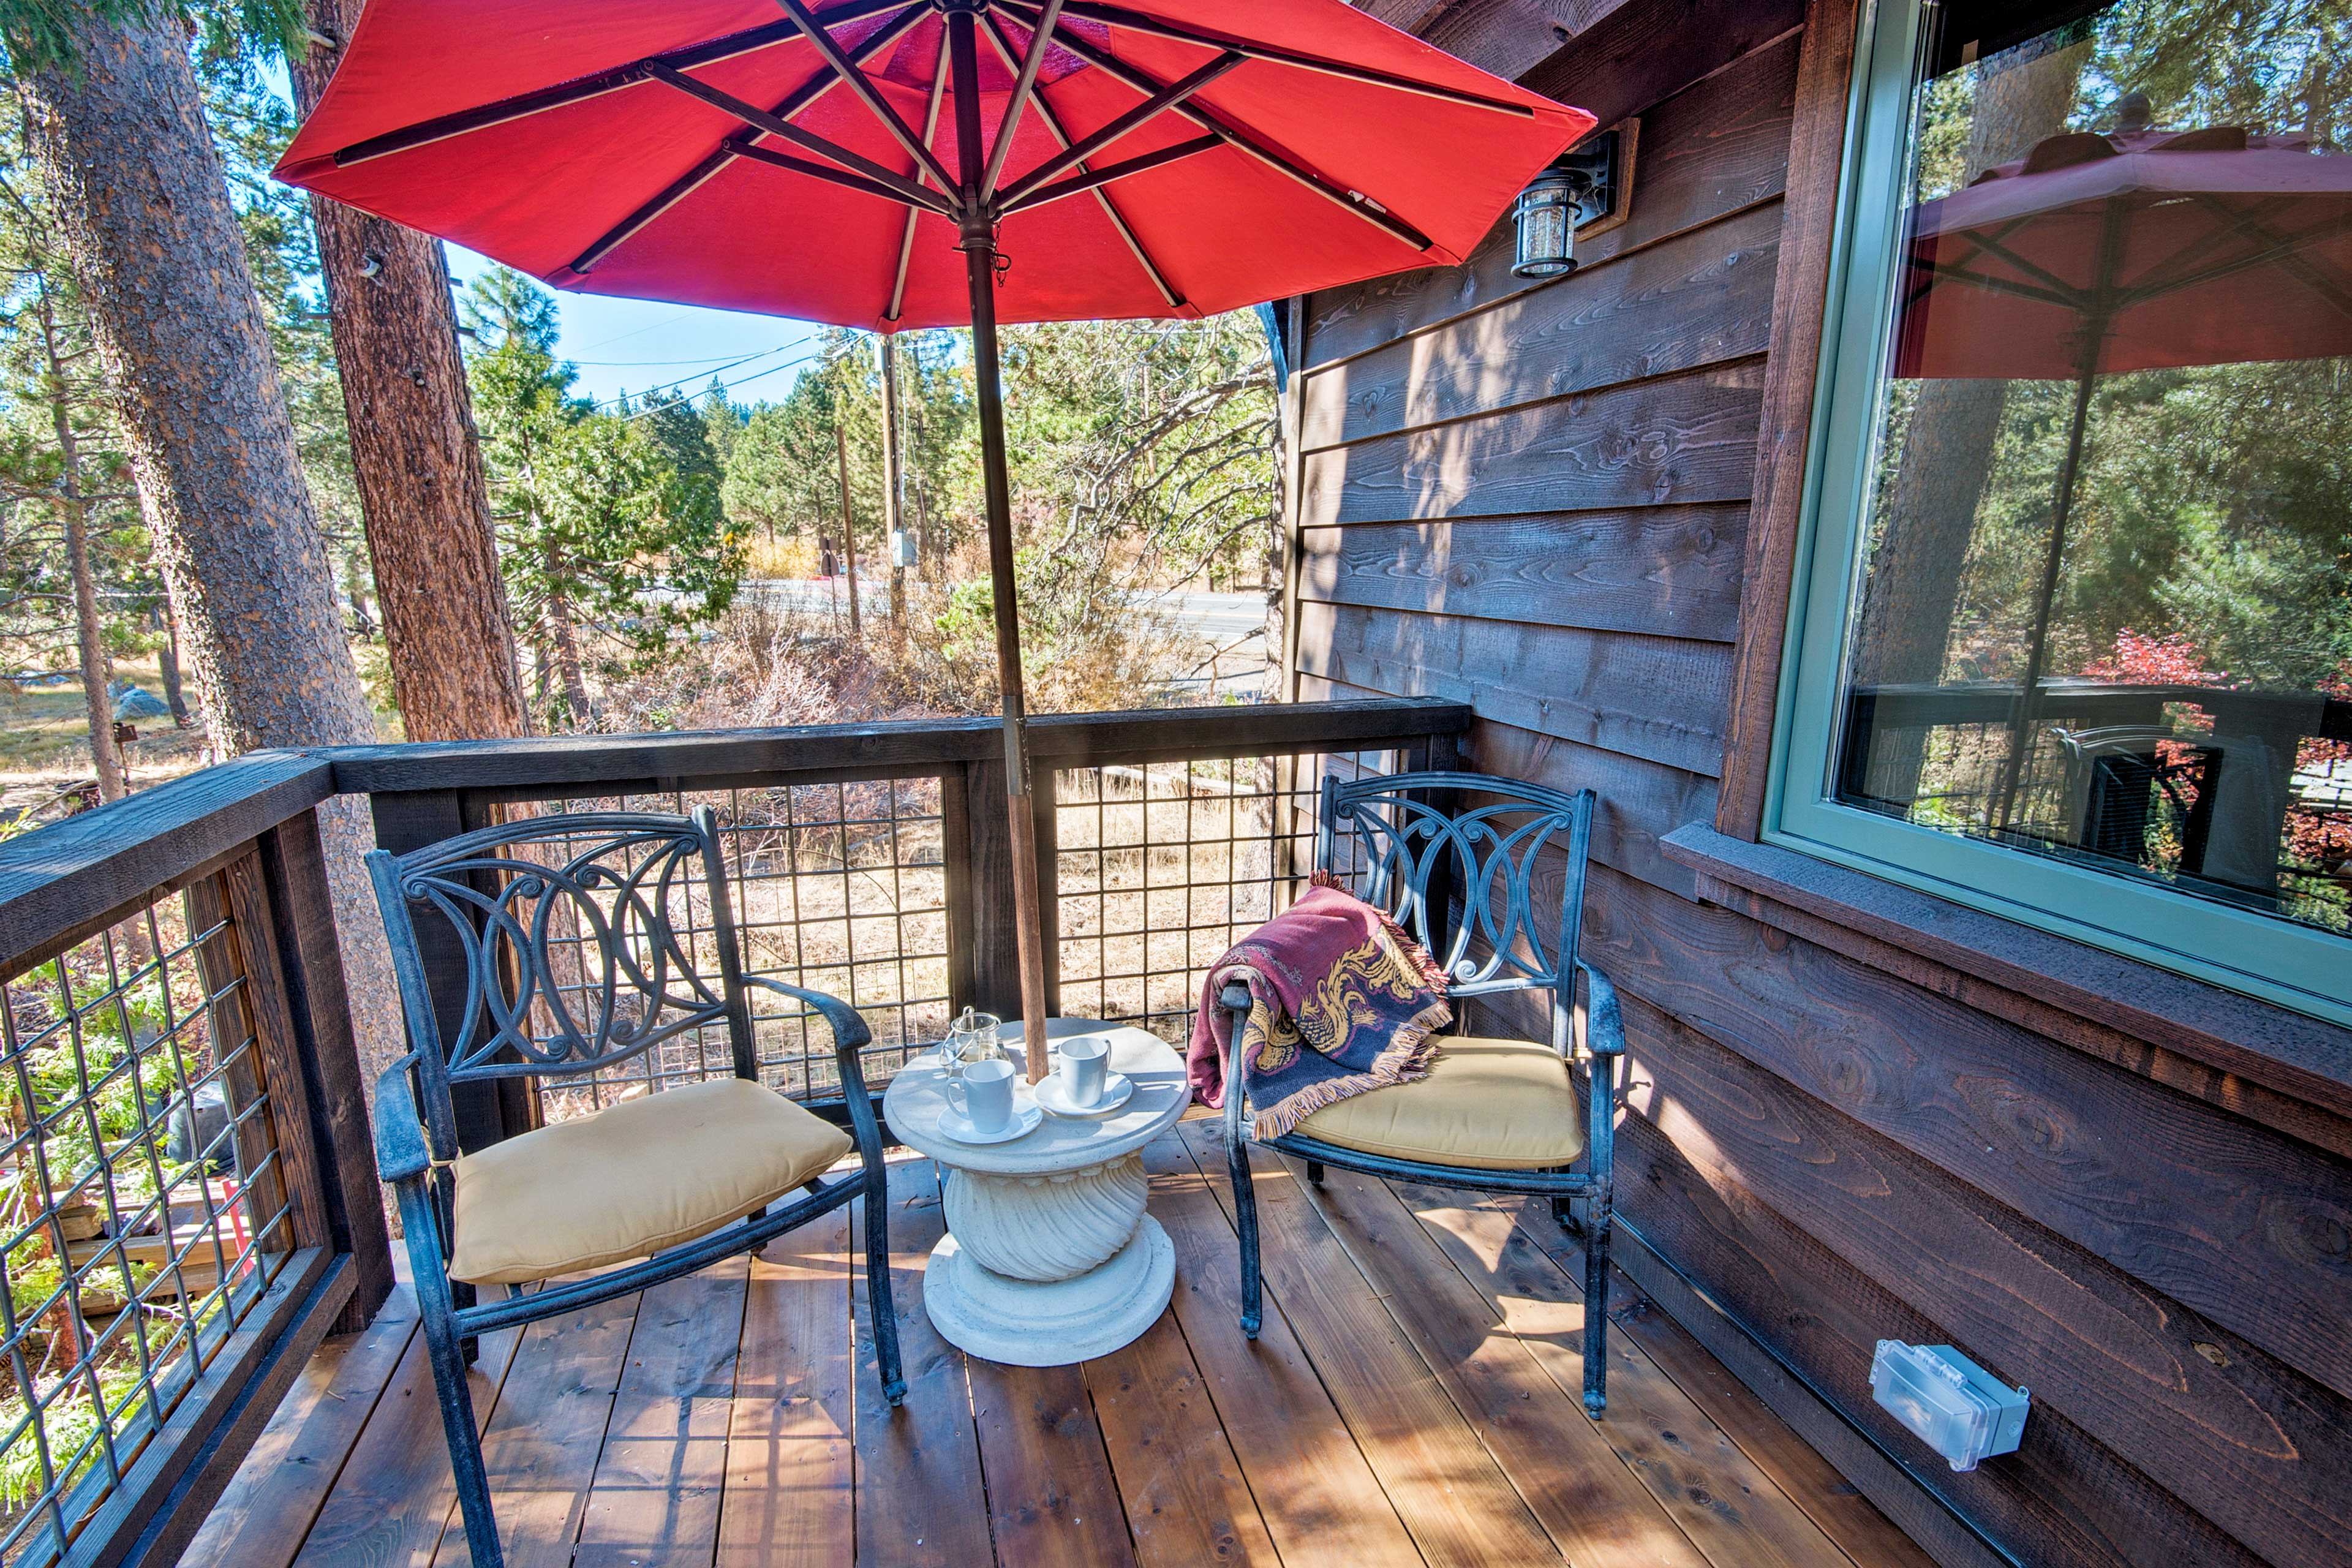 The 1-bed, 1-bath guest house is deal for a romantic couple's retreat.